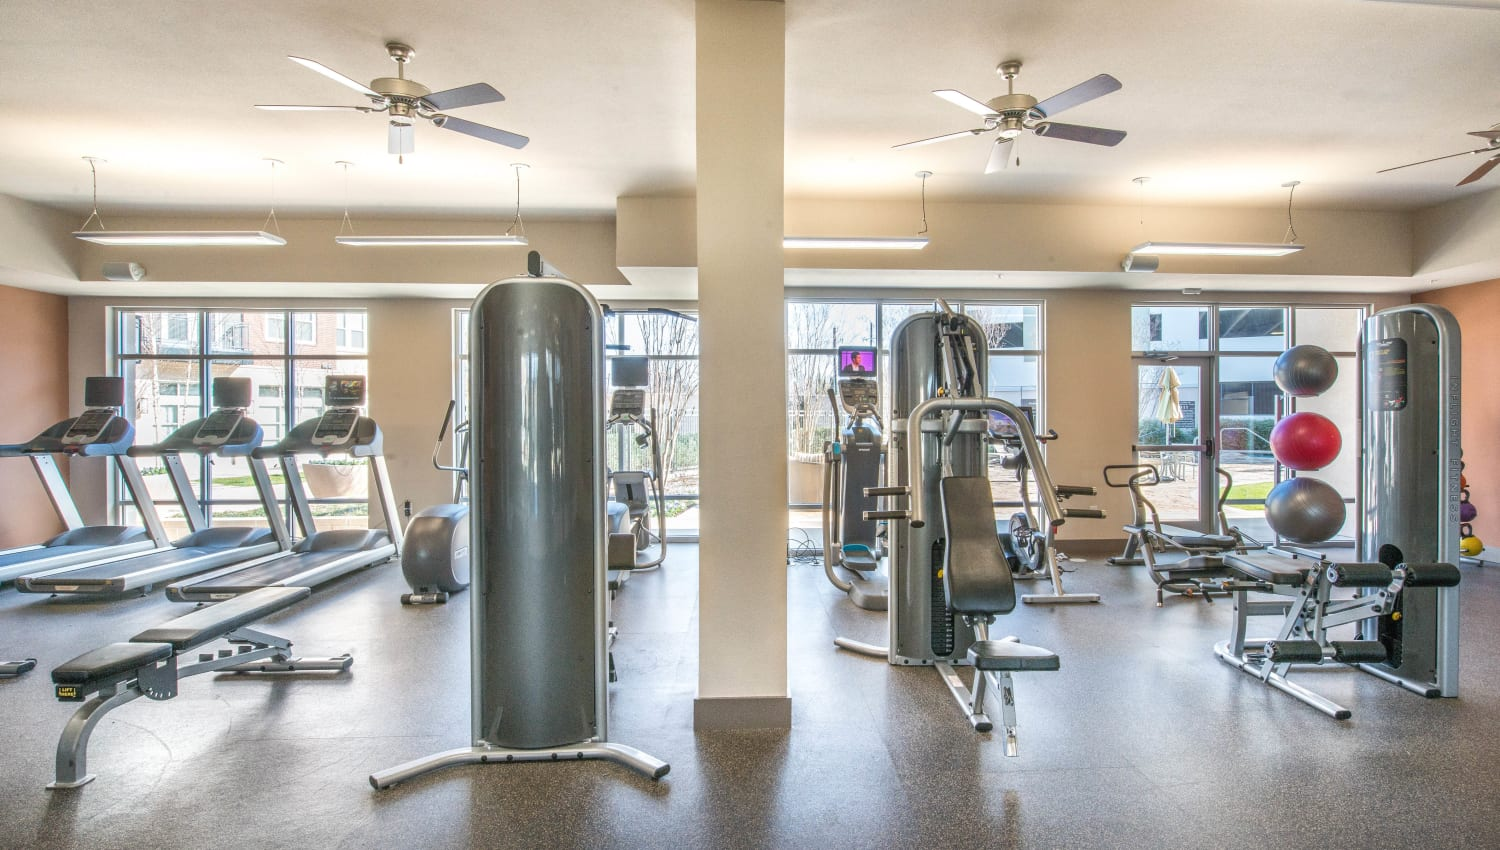 Heavy bag and exercise balls in the fitness center at Union At Carrollton Square in Carrollton, Texas